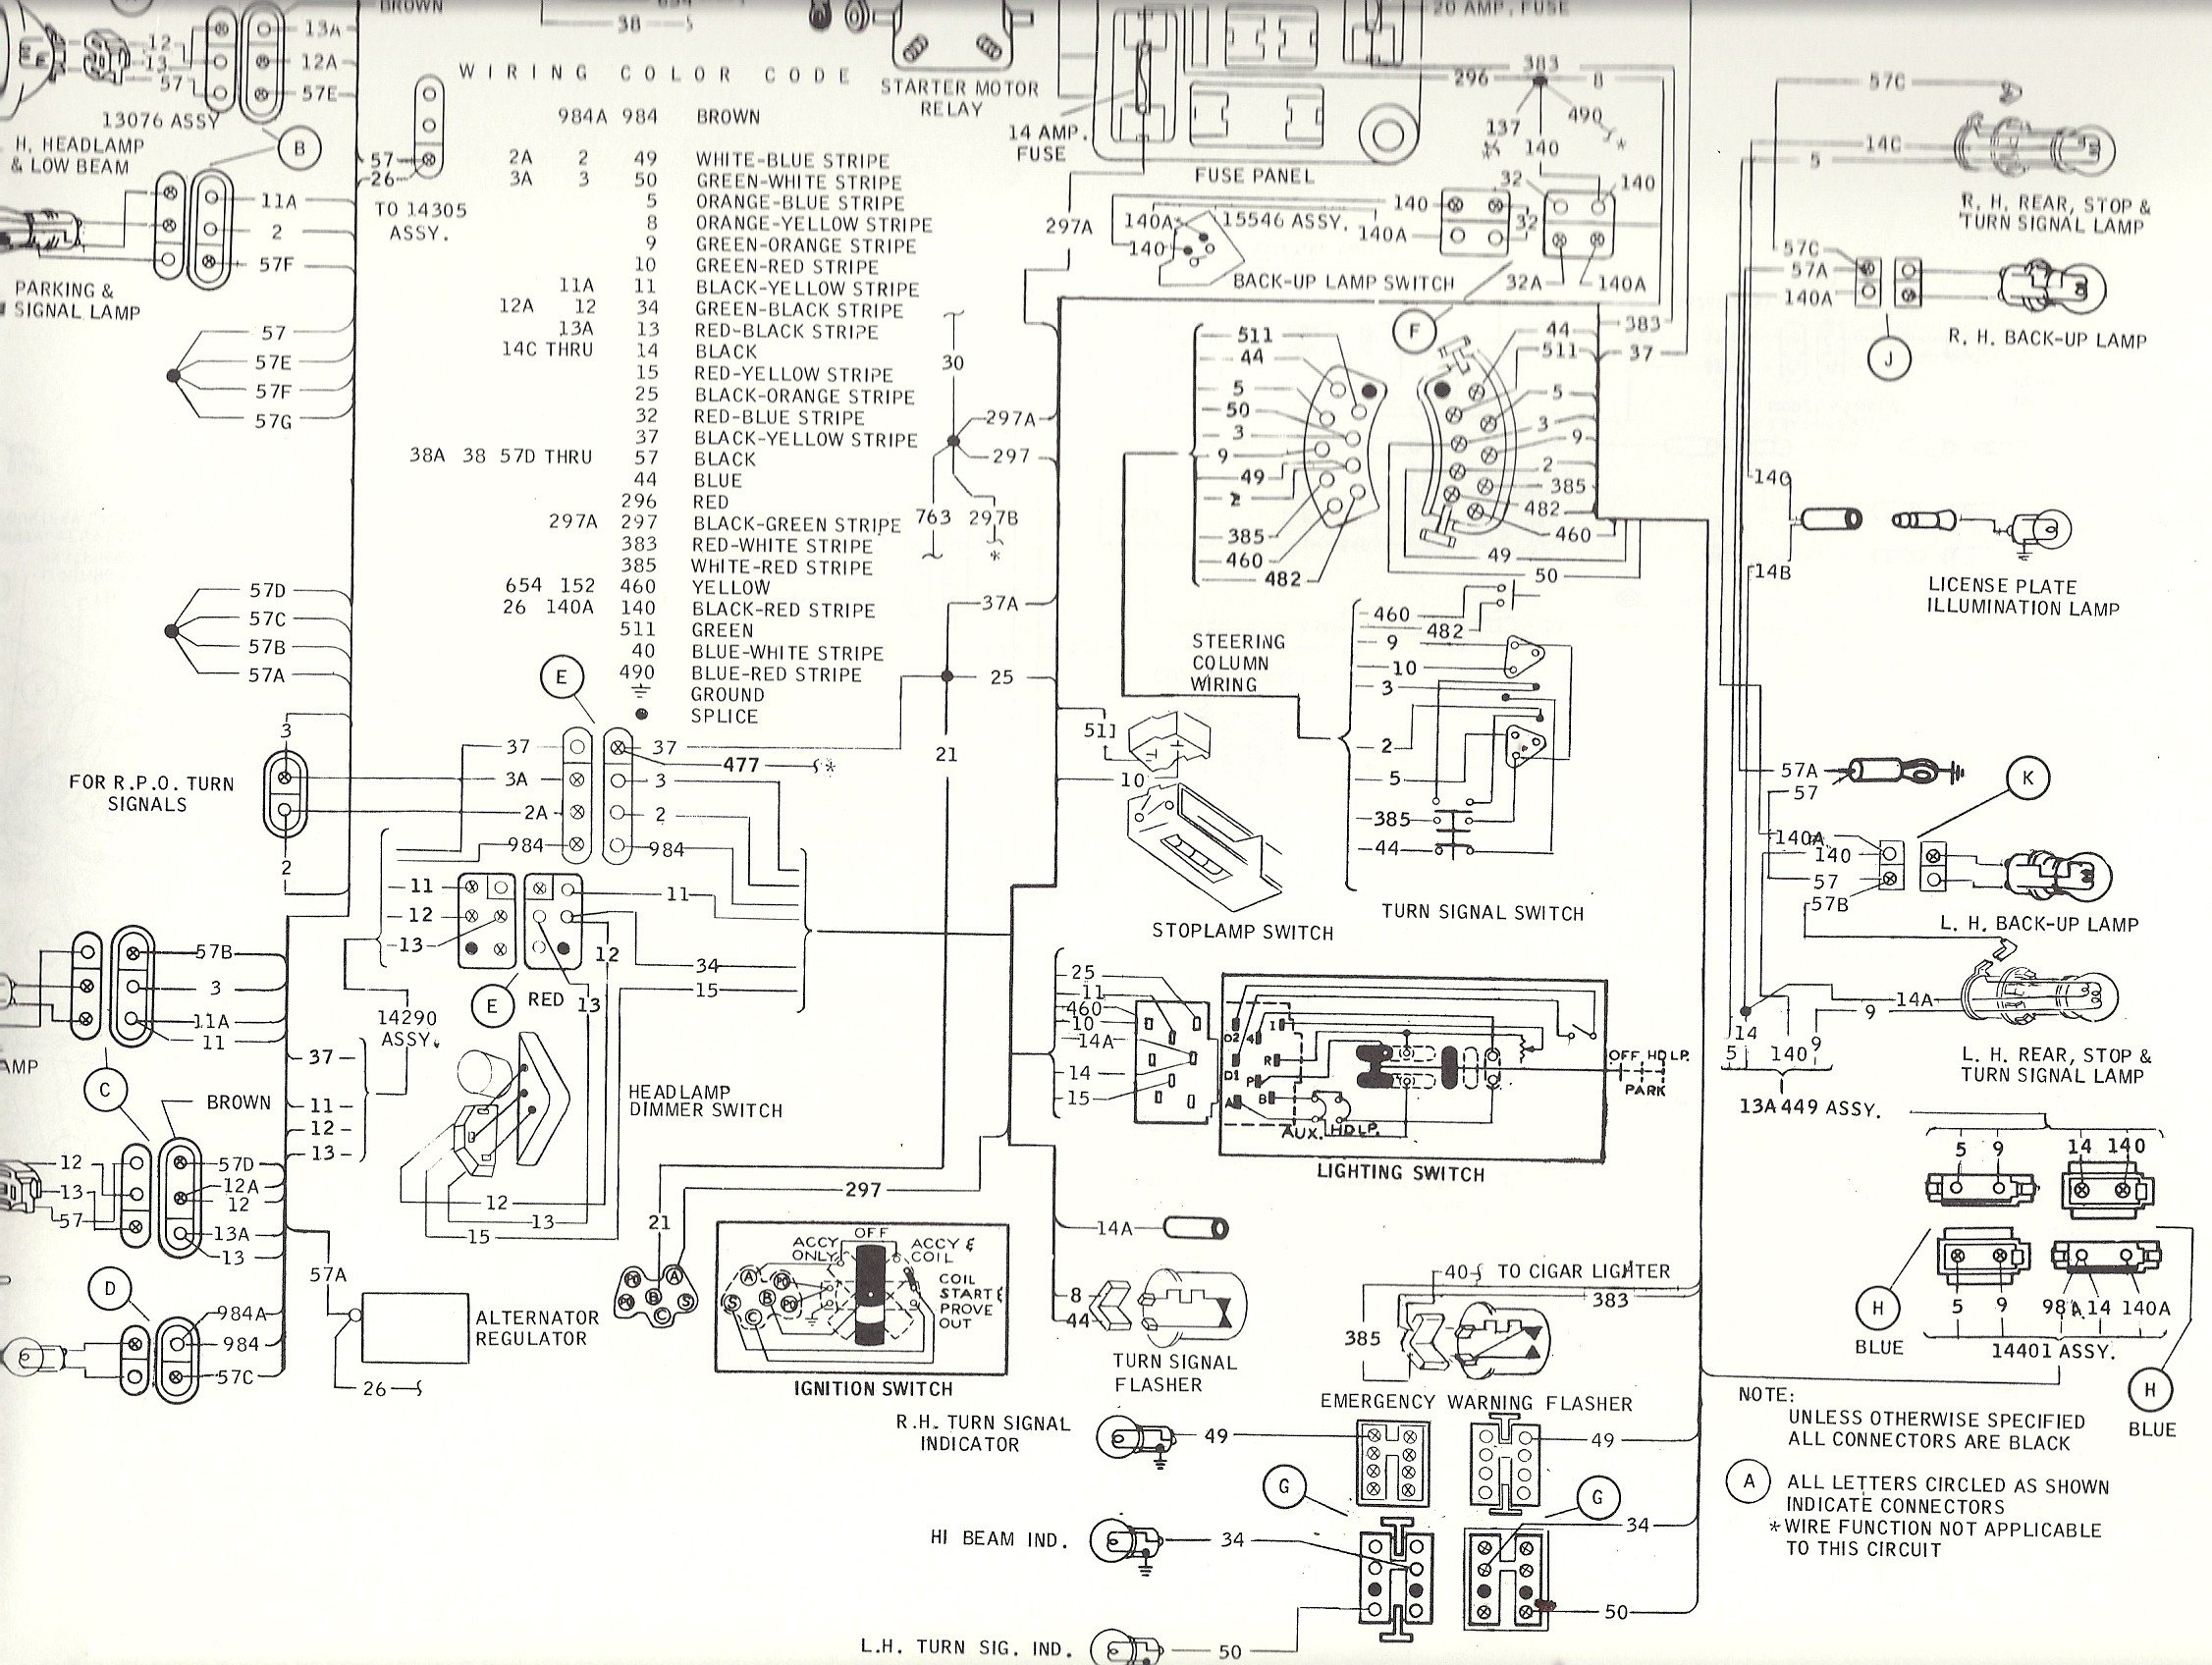 Ford Wiring Diagram Parking Lamp on 67 ford alternator, 1971 ford wiring diagram, 66 ford wiring diagram, 76 ford wiring diagram, 64 ford wiring diagram, 1967 mustang parking brake diagram, 1967 ford bronco wiring diagram, 2005 ford 500 wiring diagram, 94 ford wiring diagram, 67 ford tractor, 57 ford wiring diagram, 67 ford regulator diagram, 51 ford wiring diagram, 67 ford engine, ford ignition system wiring diagram, 1967 ford f100 wiring diagram, 67 mustang wire diagram, 65 ford wiring diagram, 67 ford charging system, 67 ford speedometer,